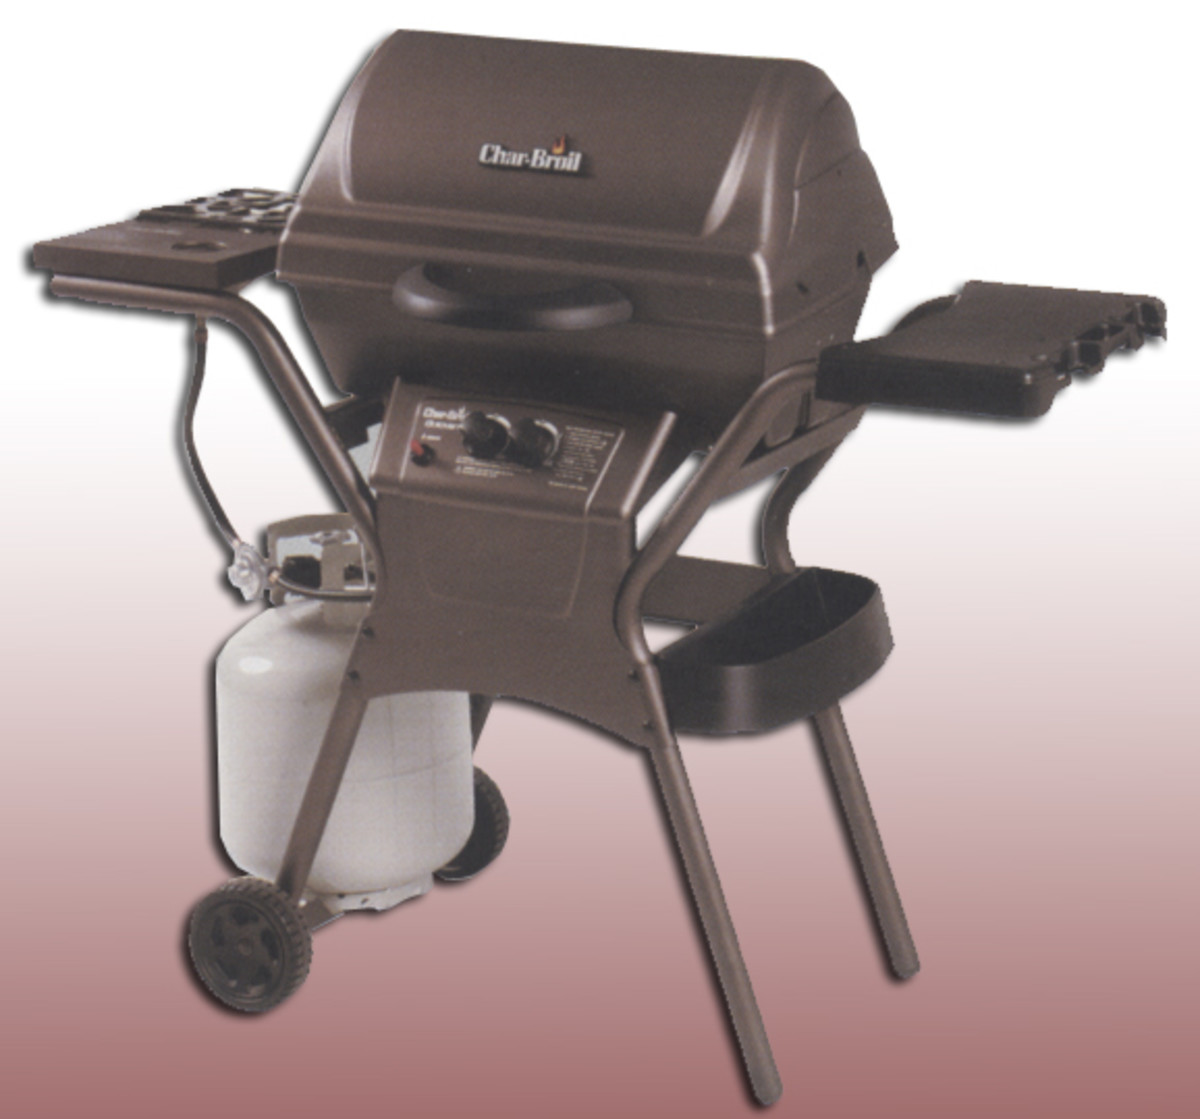 Char-broil model 4636325 with evenflame system 30,000 BTU